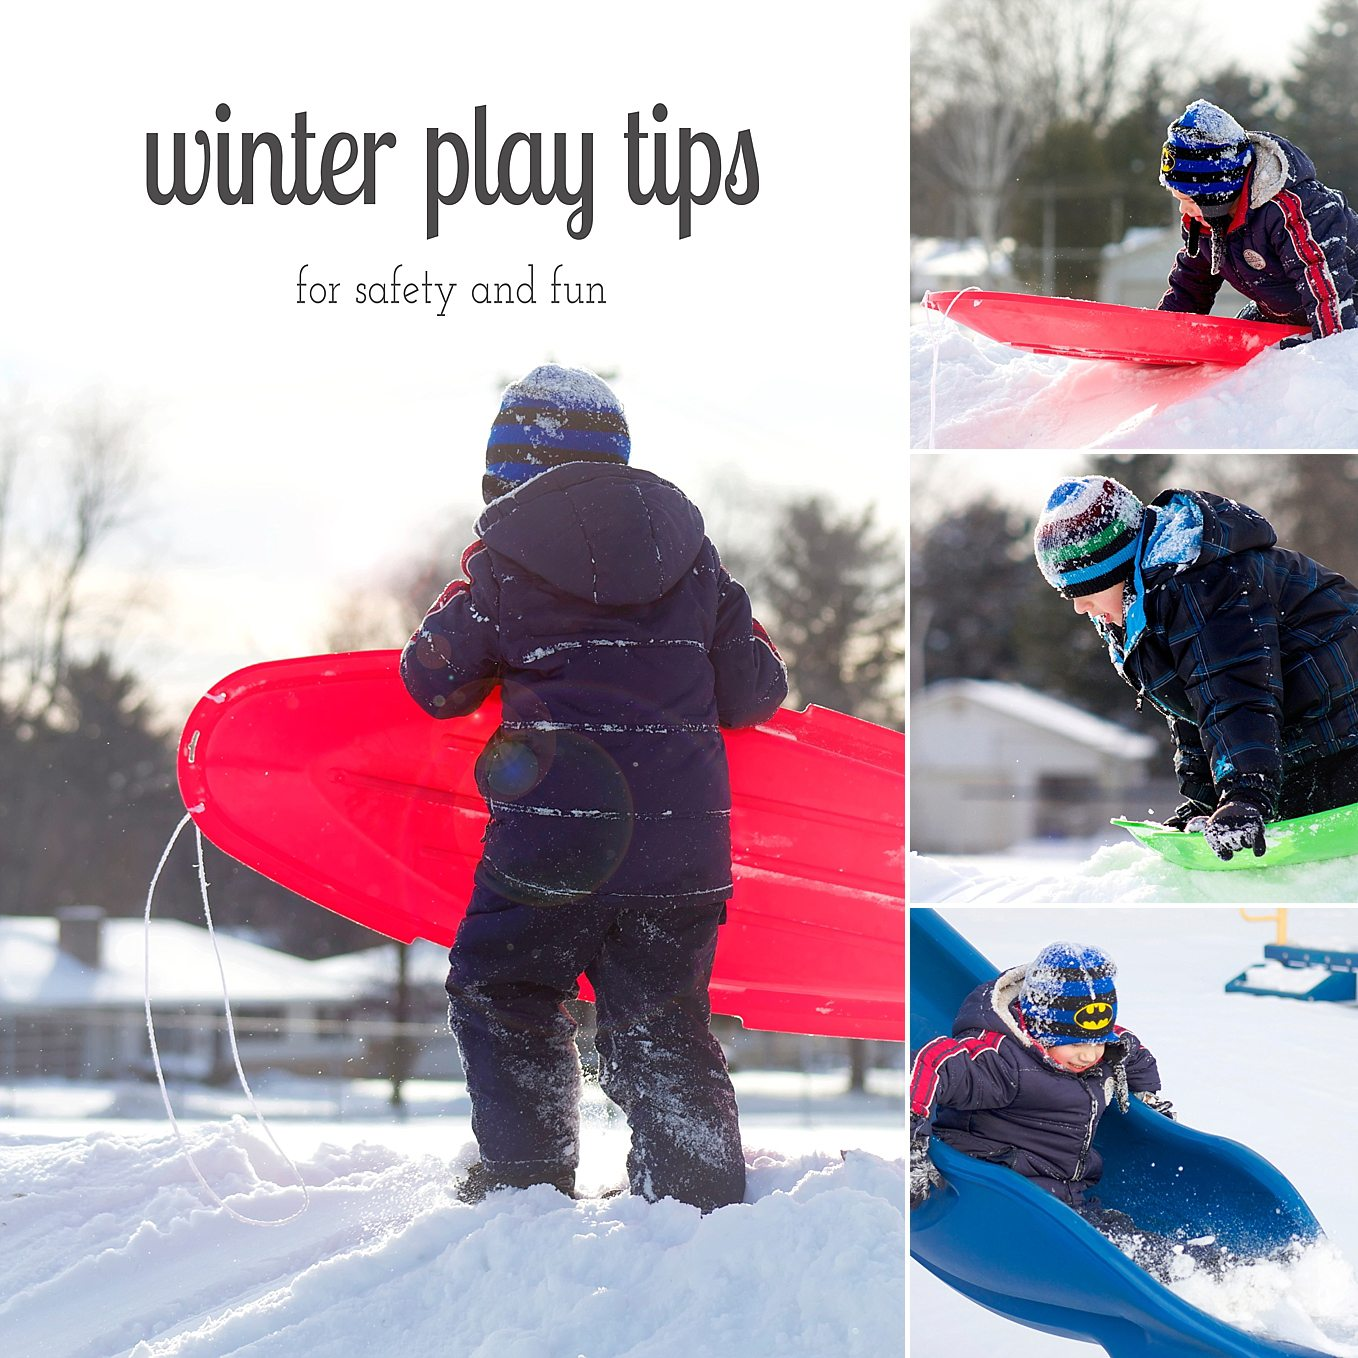 Winter Play Tips for Safety and Fun 1